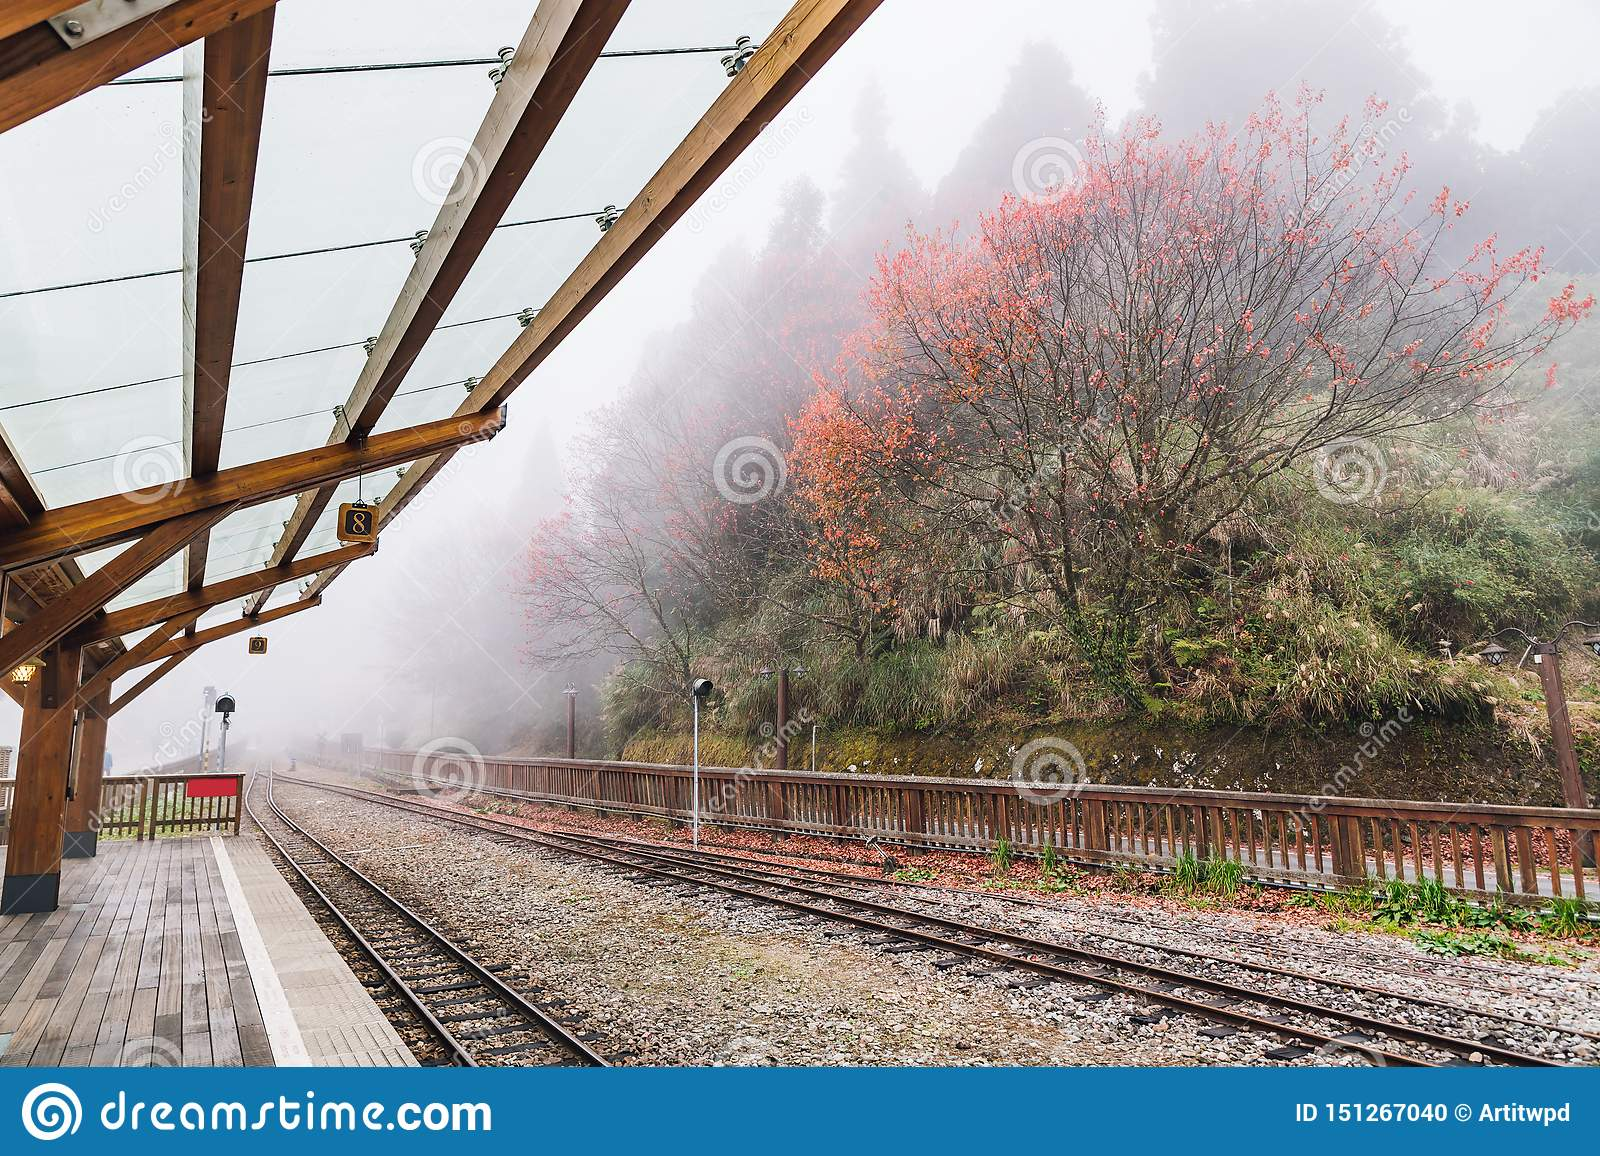 Empty train rails in Alishan Forest Railway stop on the platform of Zhaoping railway station with trees and fog in the background